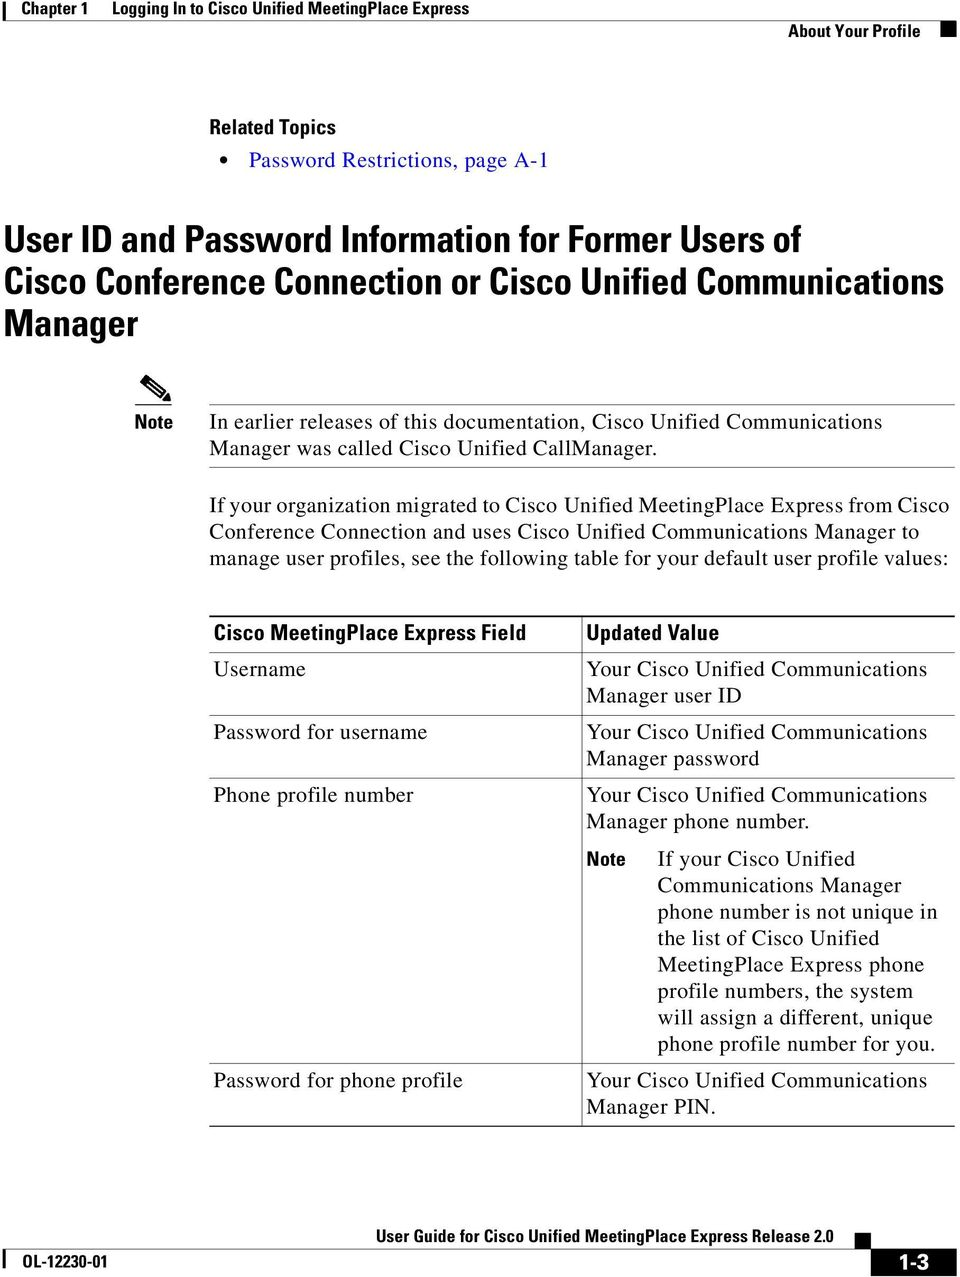 If your organization migrated to Cisco Unified MeetingPlace Express from Cisco Conference Connection and uses Cisco Unified Communications Manager to manage user profiles, see the following table for